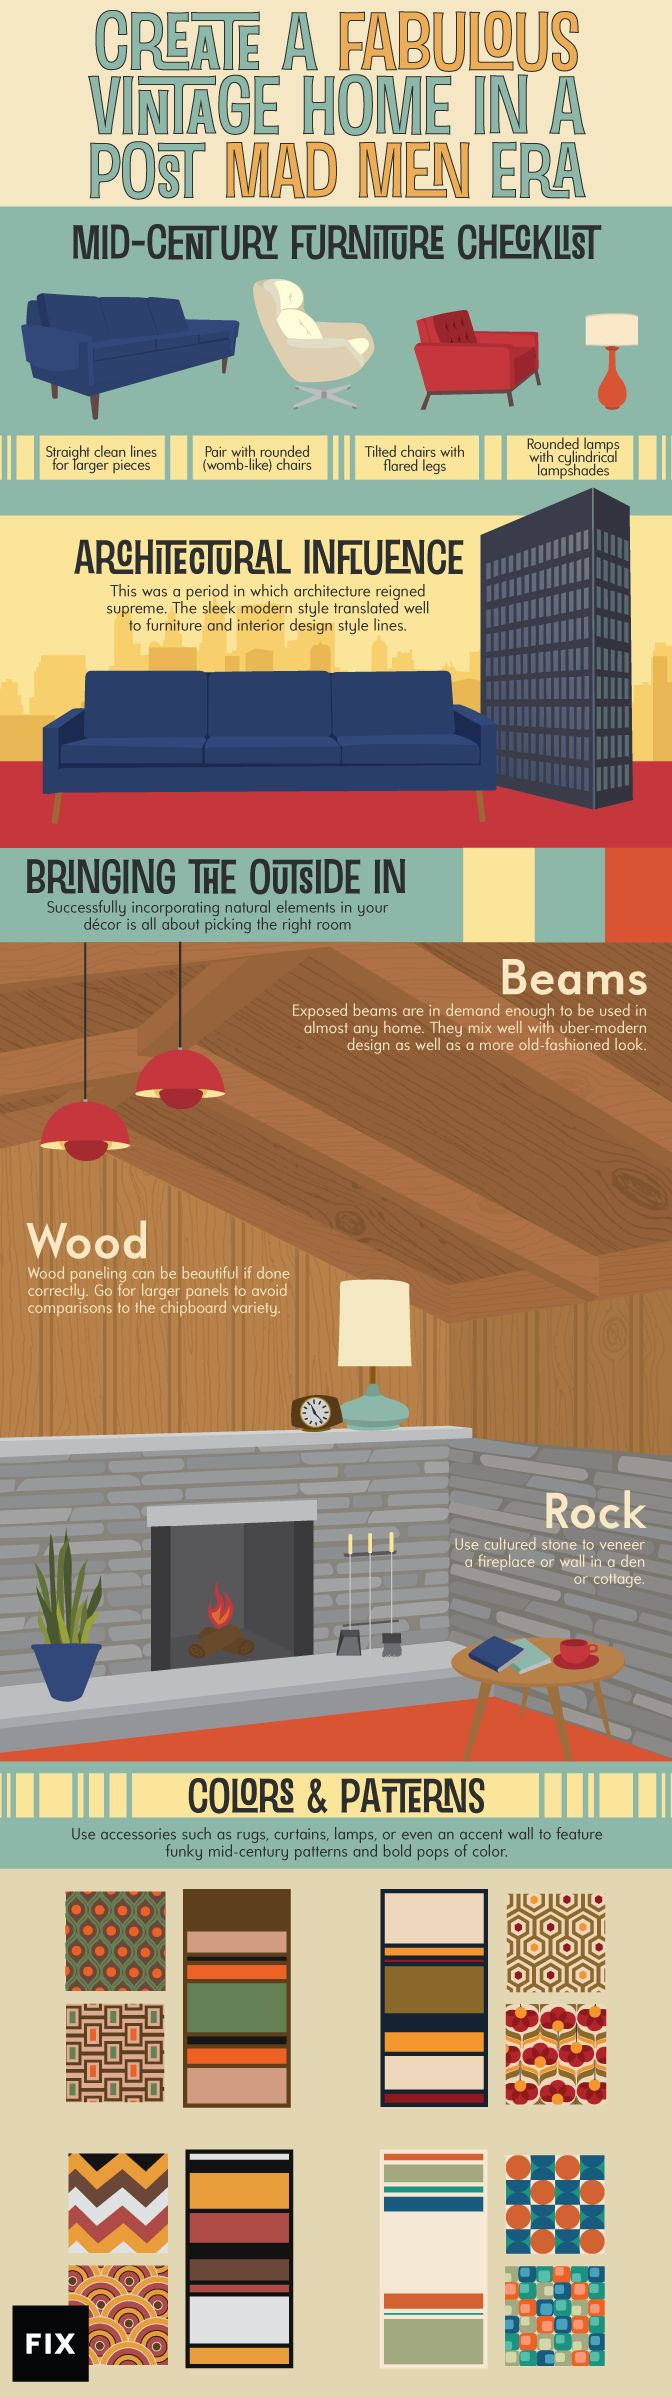 Consult our guide for creating a fabulous vintage look for your home! #MadMen